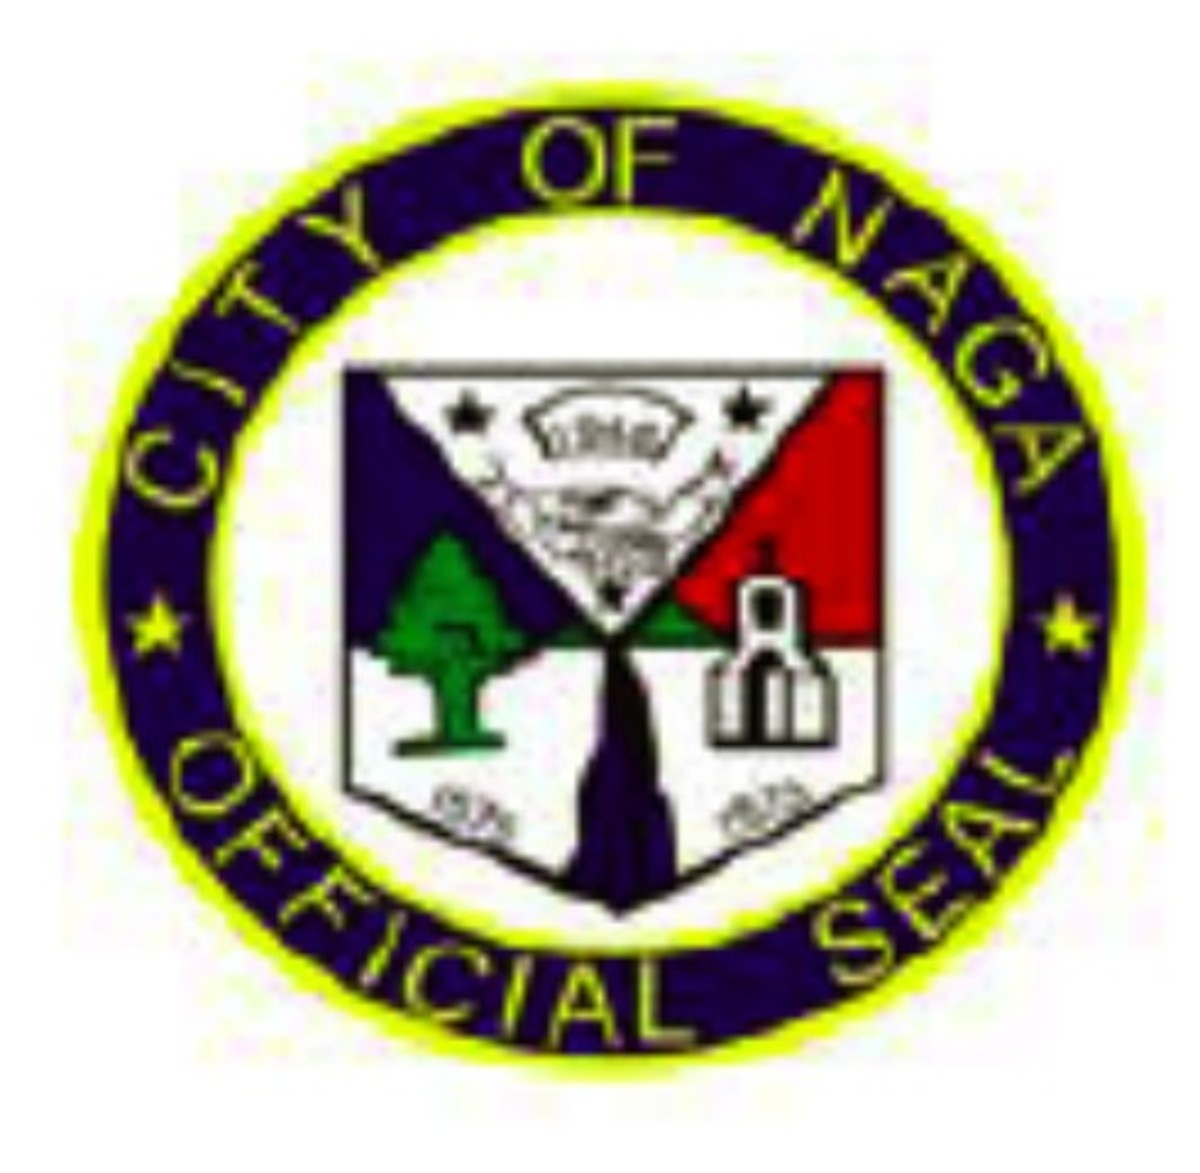 Ph Seal of Naga City